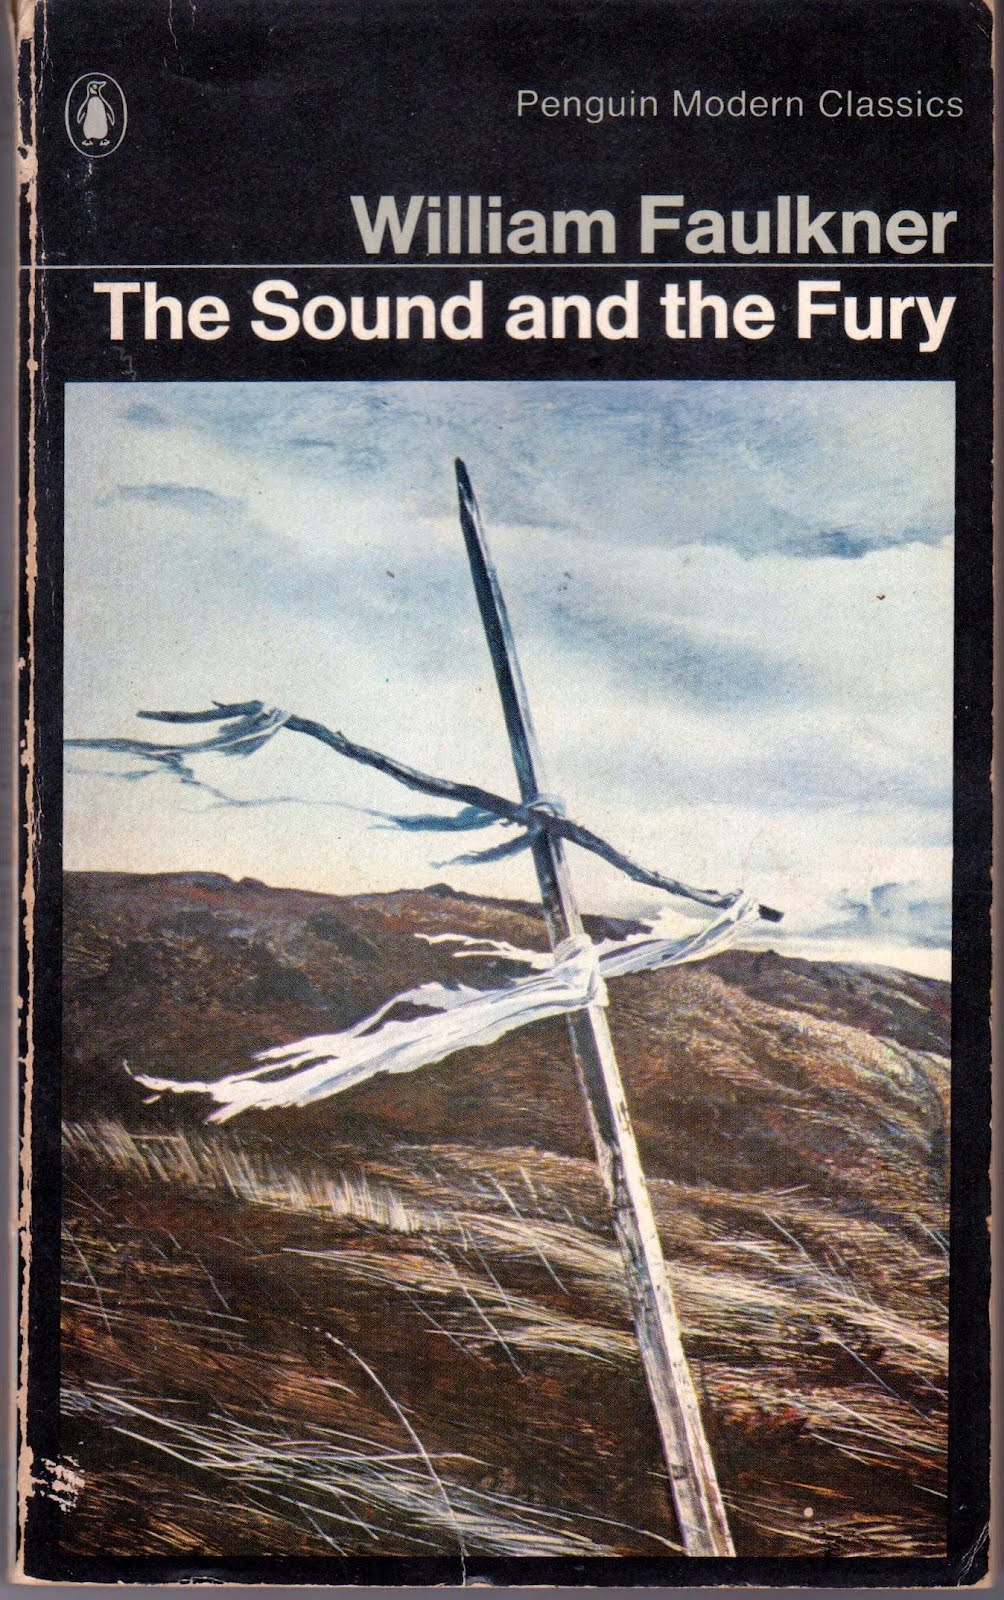 review the sound and the fury Free summary and analysis of the events in william faulkner's the sound and the fury that won't make you snore we promise.